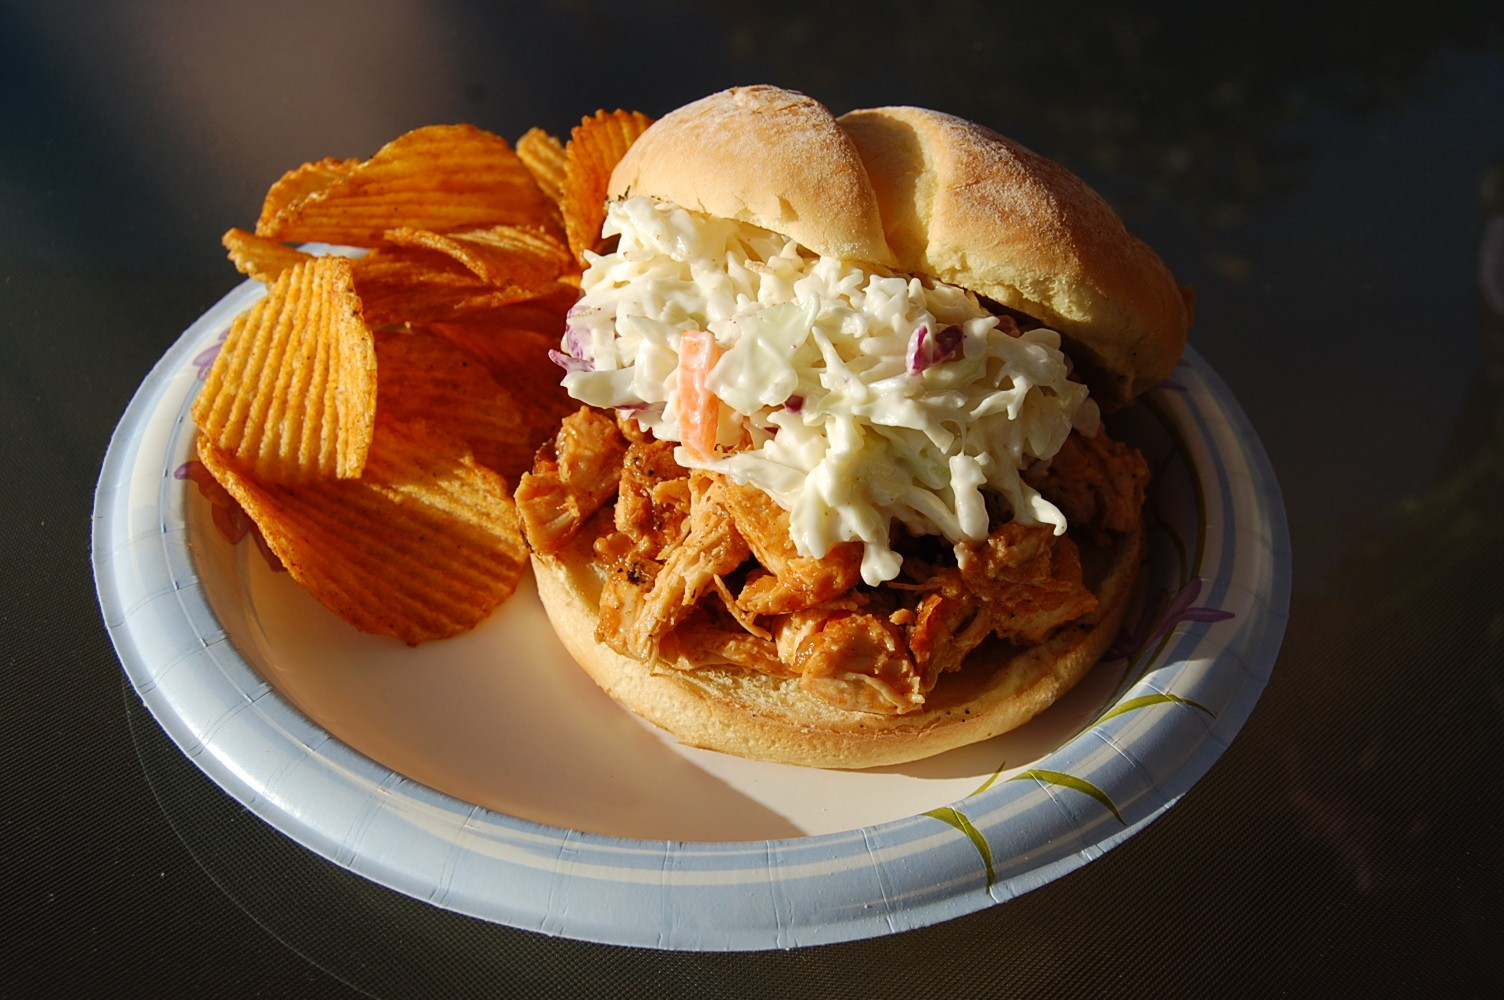 Barbecue Chicken Sandwiches With Cole Slaw Recipes — Dishmaps